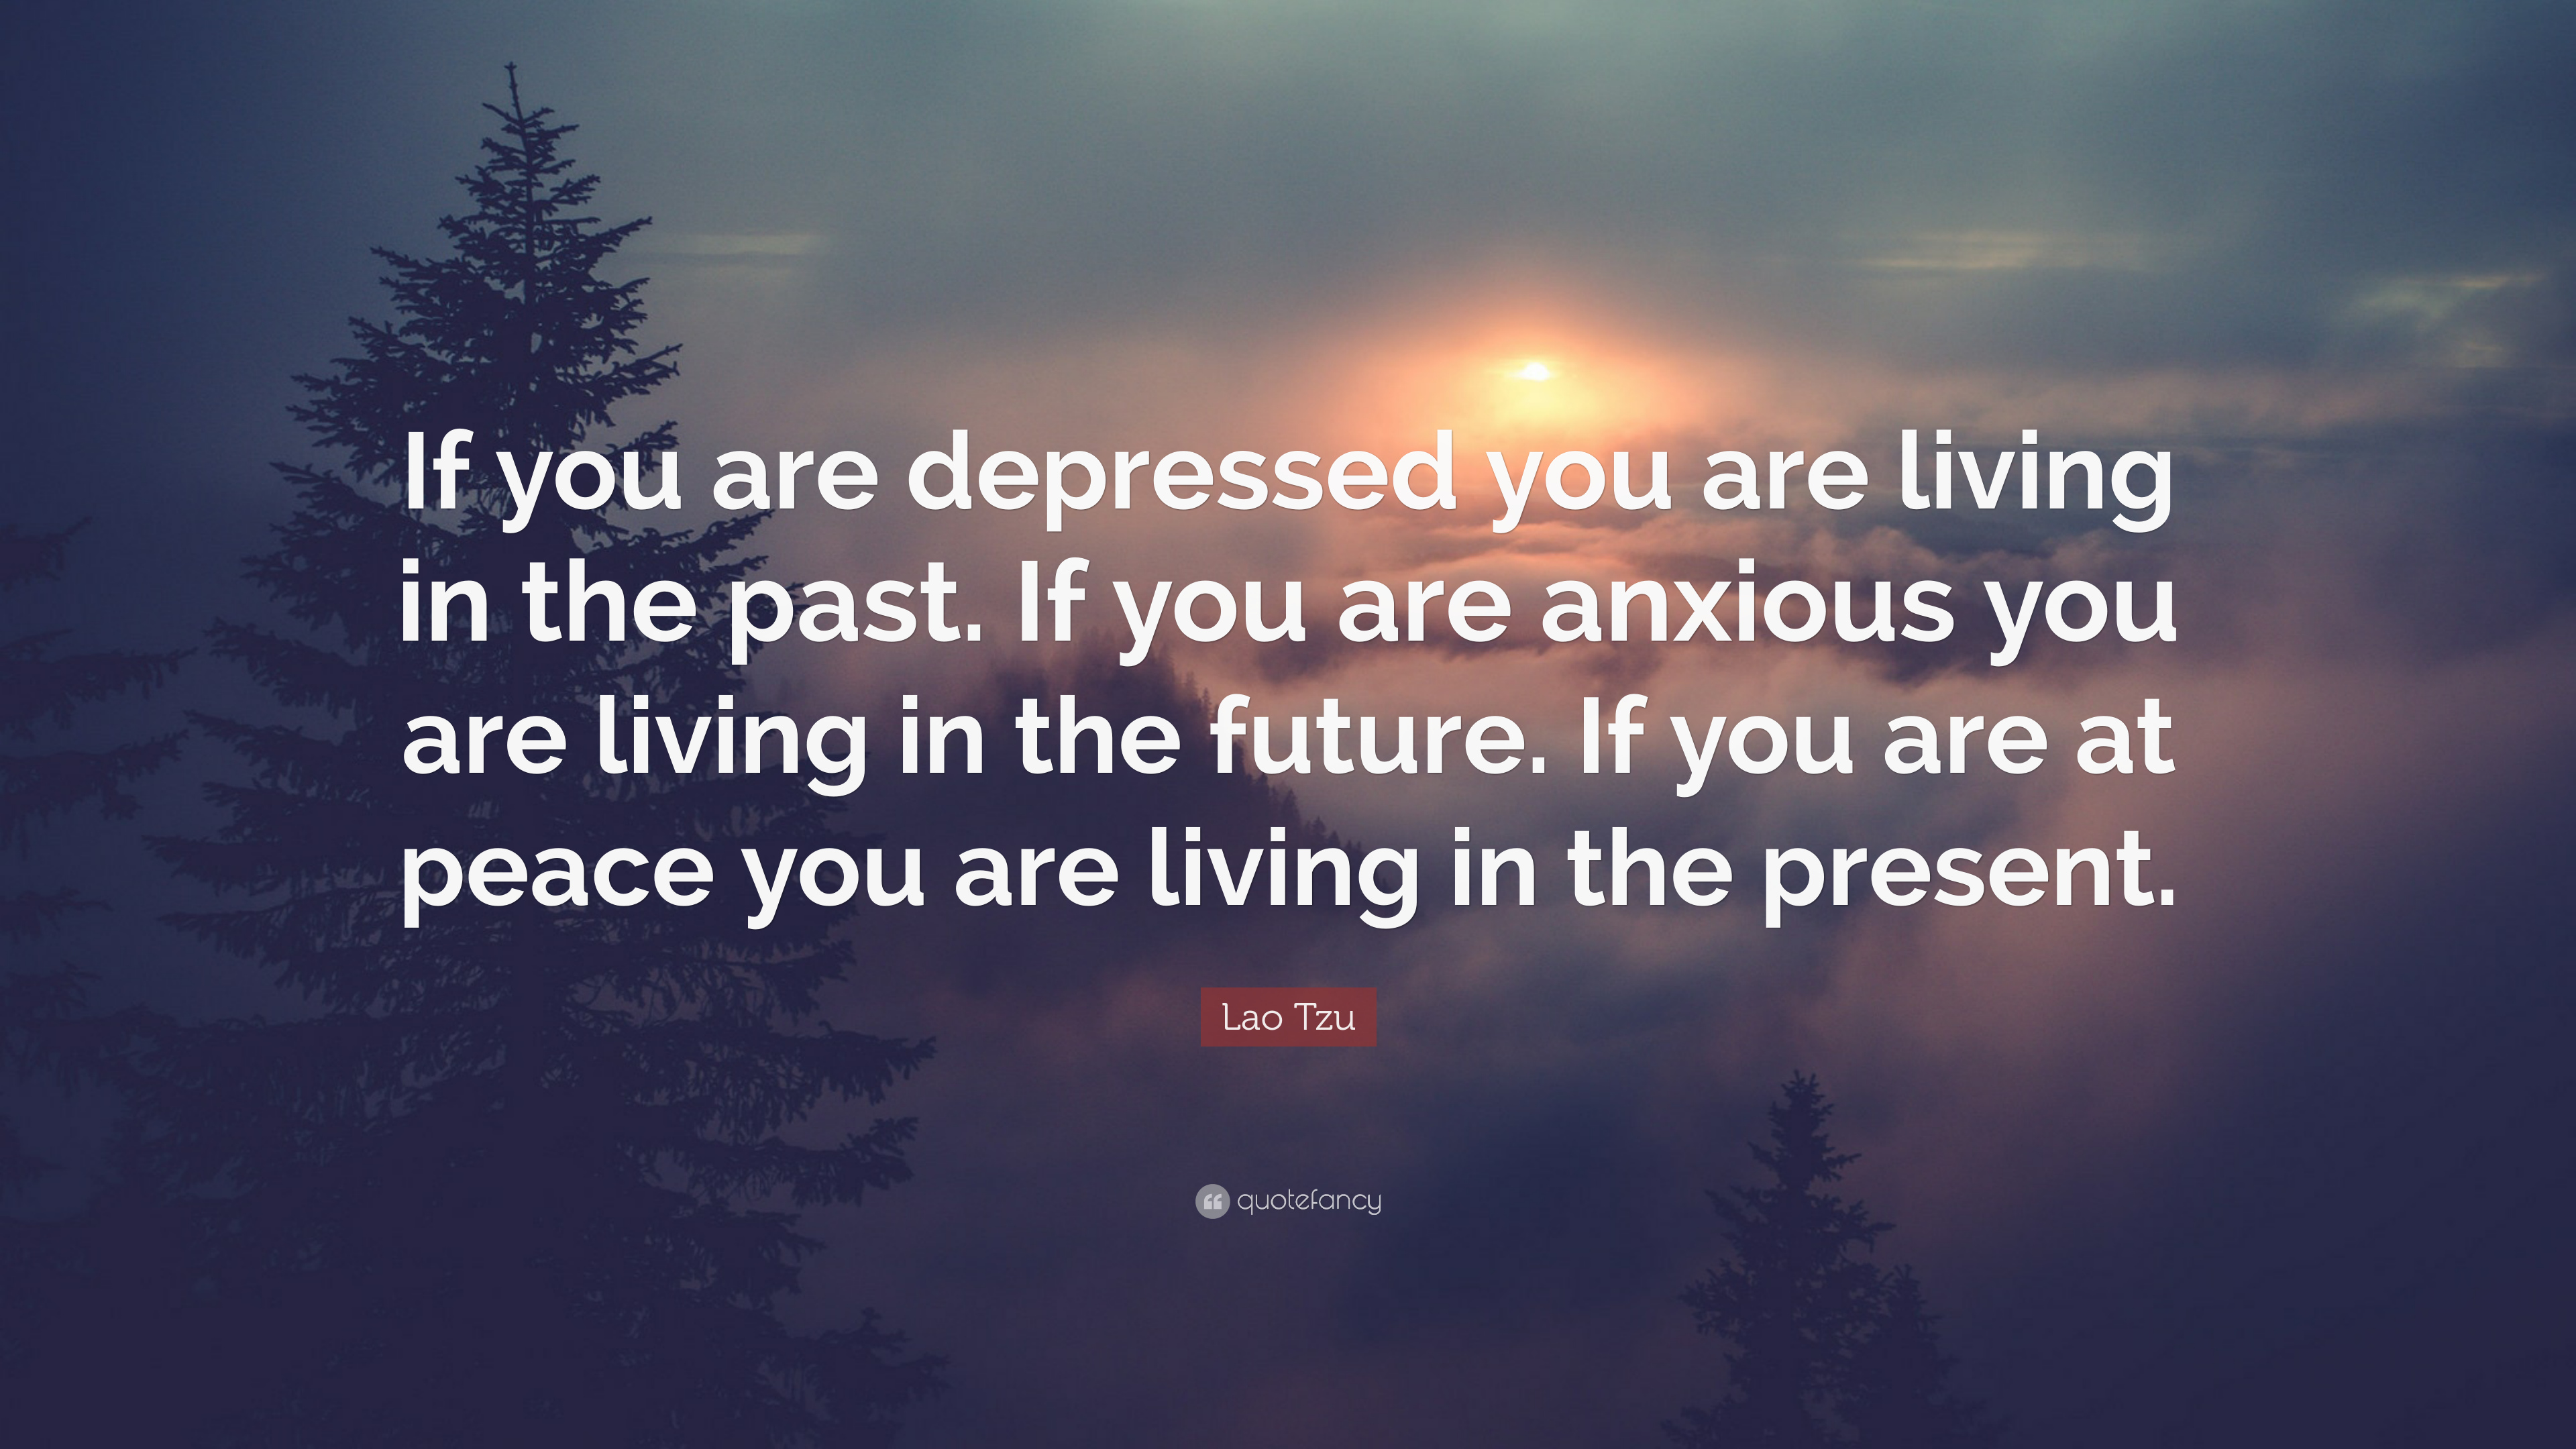 Image of: Lonely Lao Tzu Quote if You Are Depressed You Are Living In The Past Quotefancy Lao Tzu Quote if You Are Depressed You Are Living In The Past If